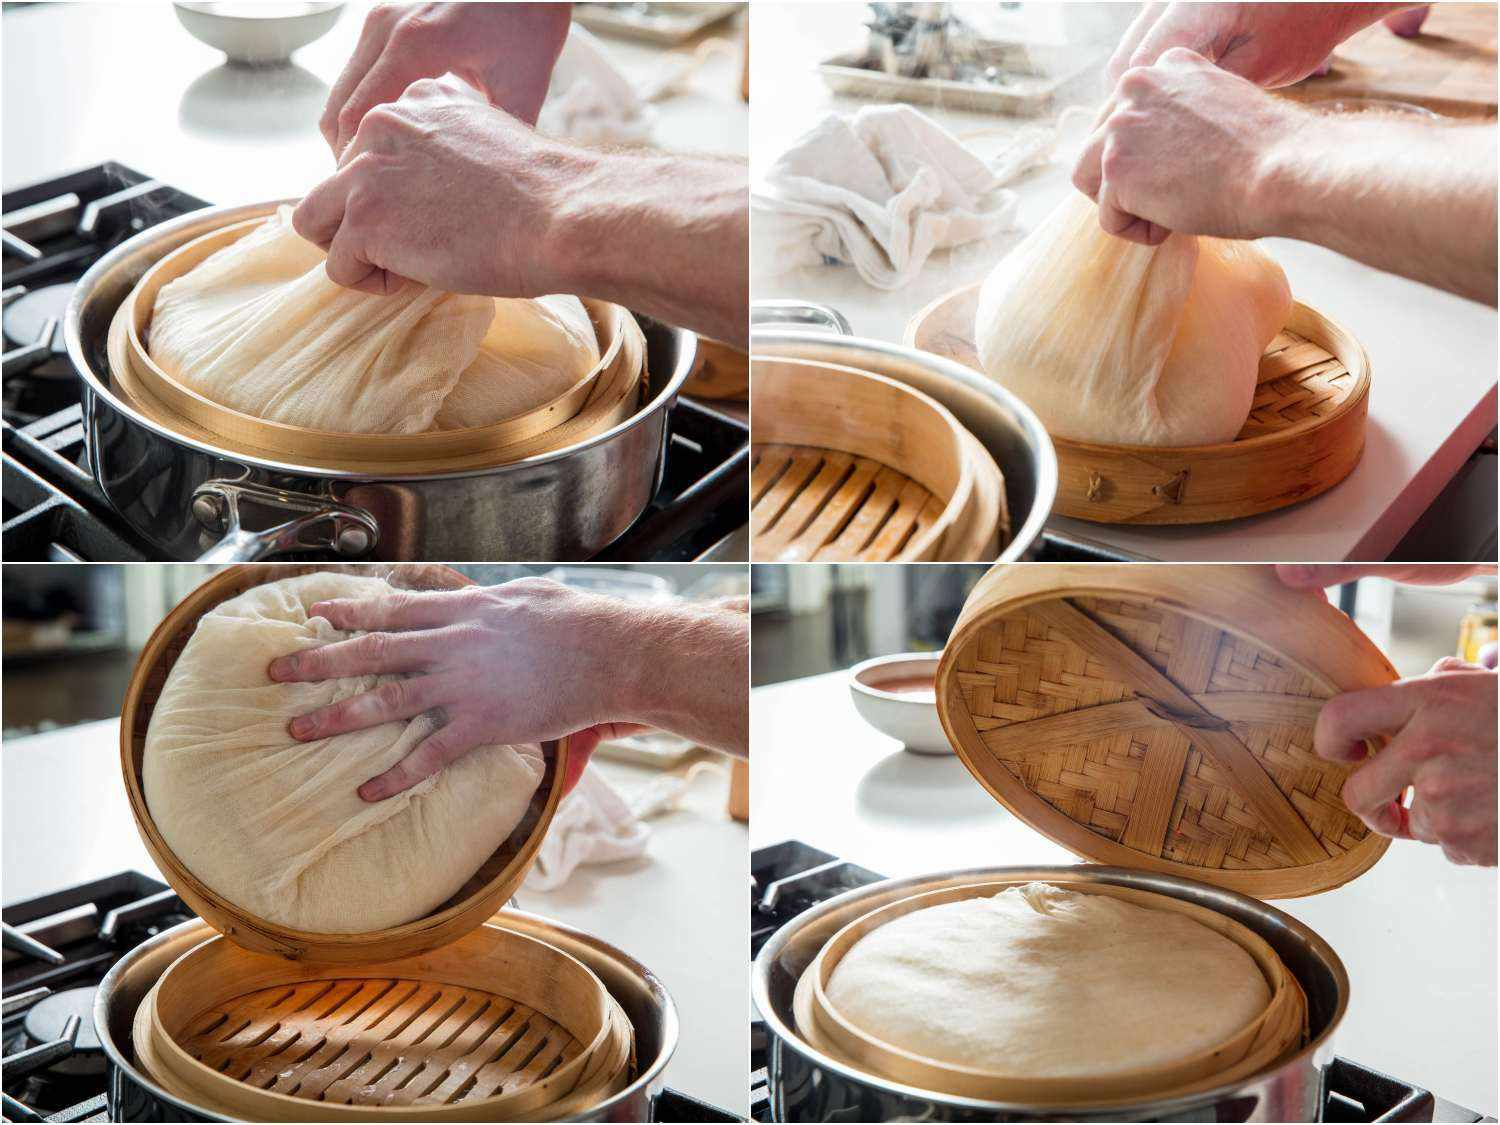 Process shots of flipping over cheesecloth parcel of sticky rice midway through cooking process.